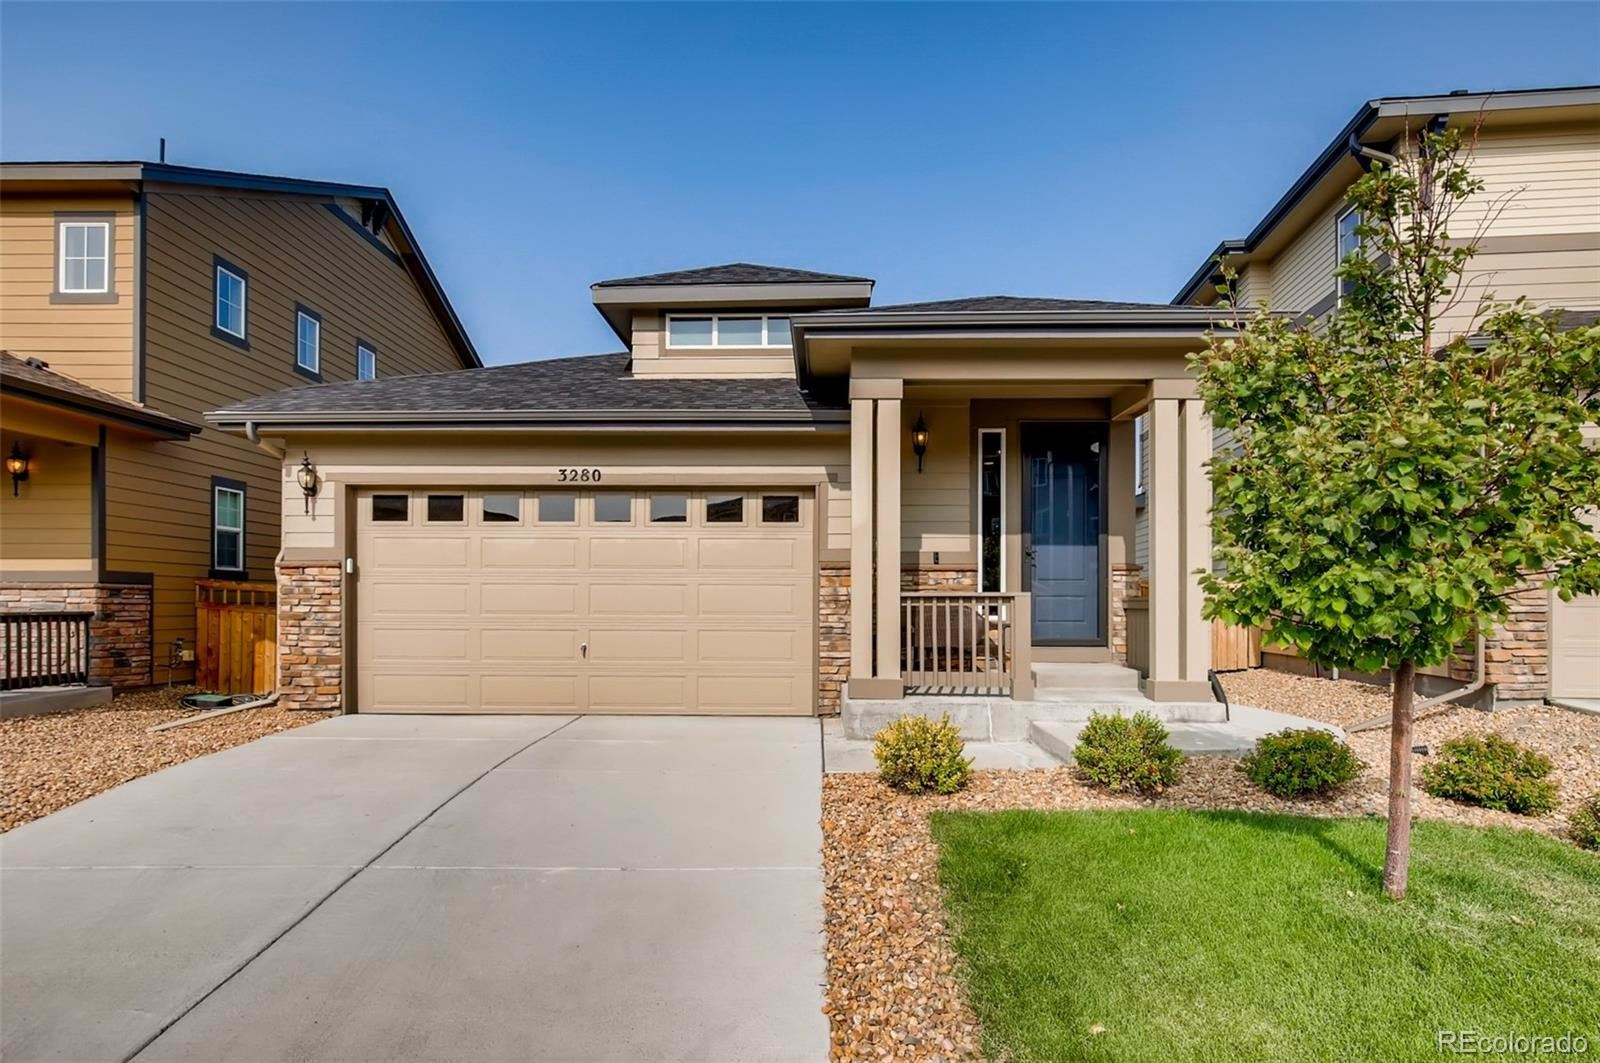 3280 Youngheart Way, Castle Rock, CO 80109 - #: 7378140